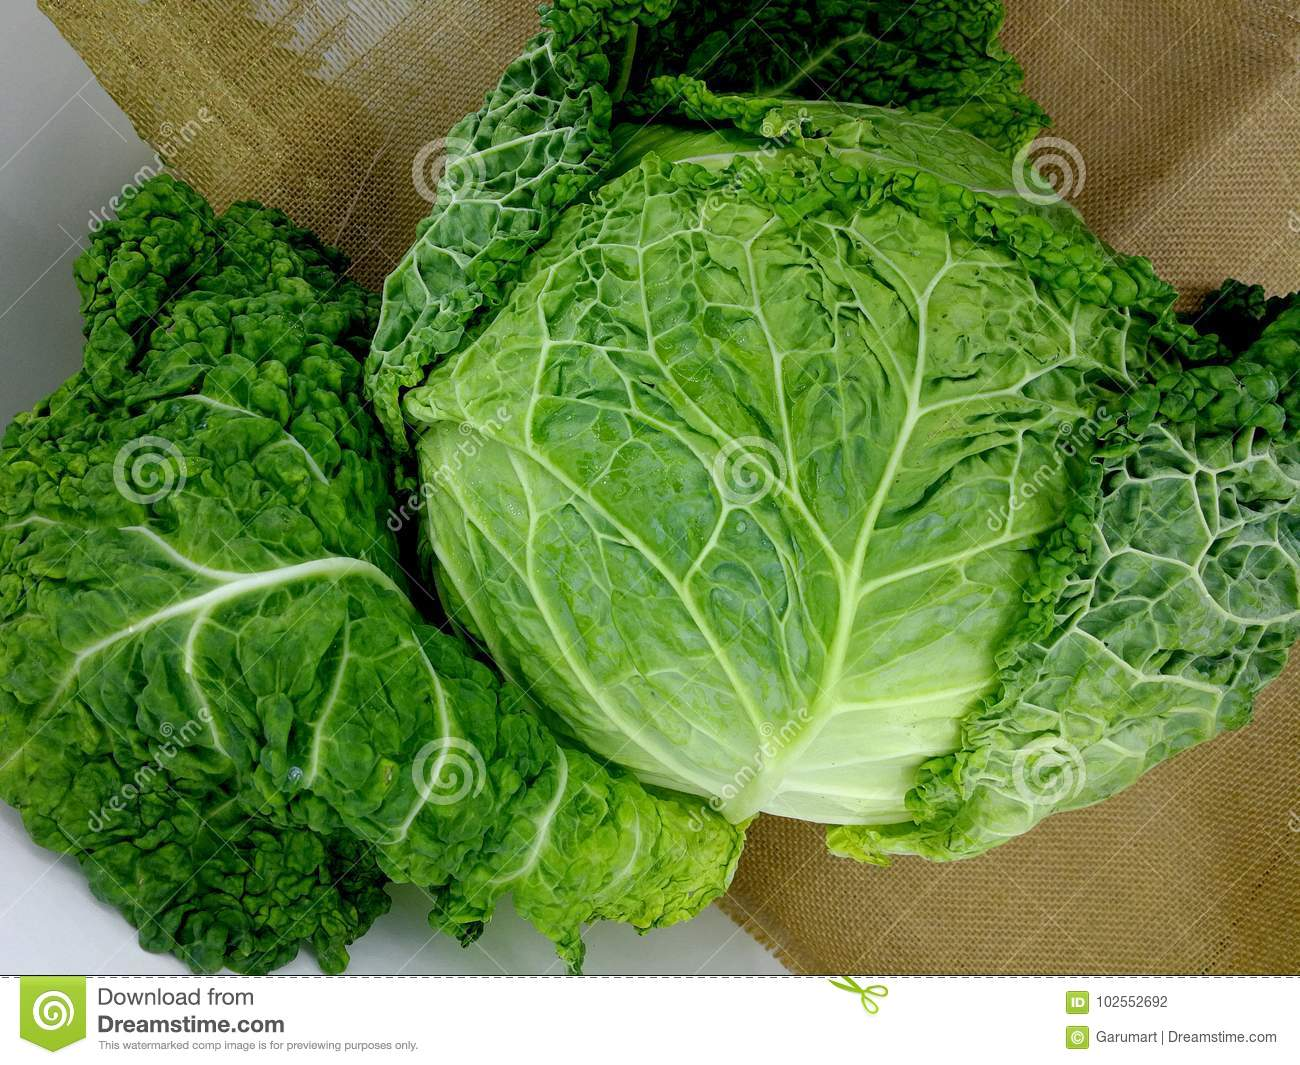 Cabbage with curly leaves